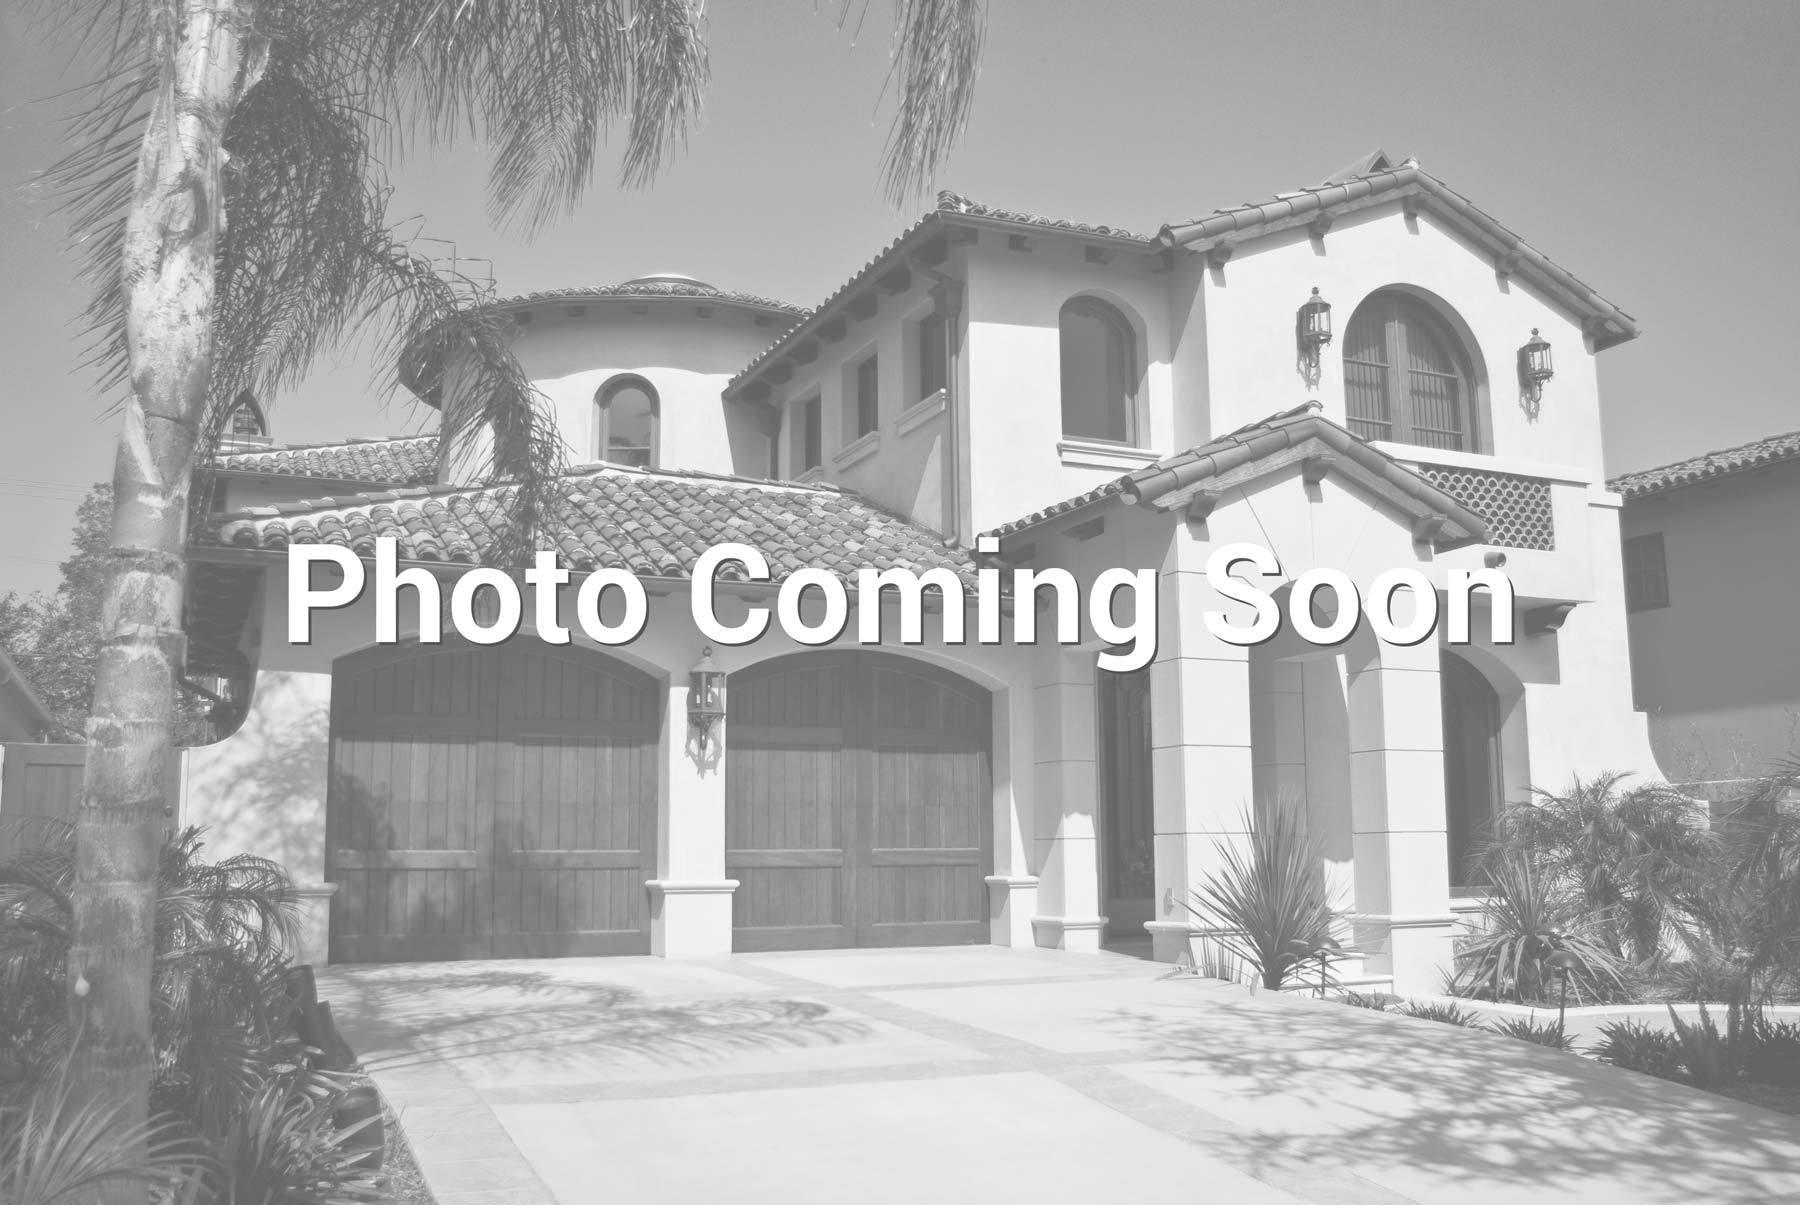 $570,000 - 3Br/2Ba - Home for Sale in Palo Viento 1, Scottsdale